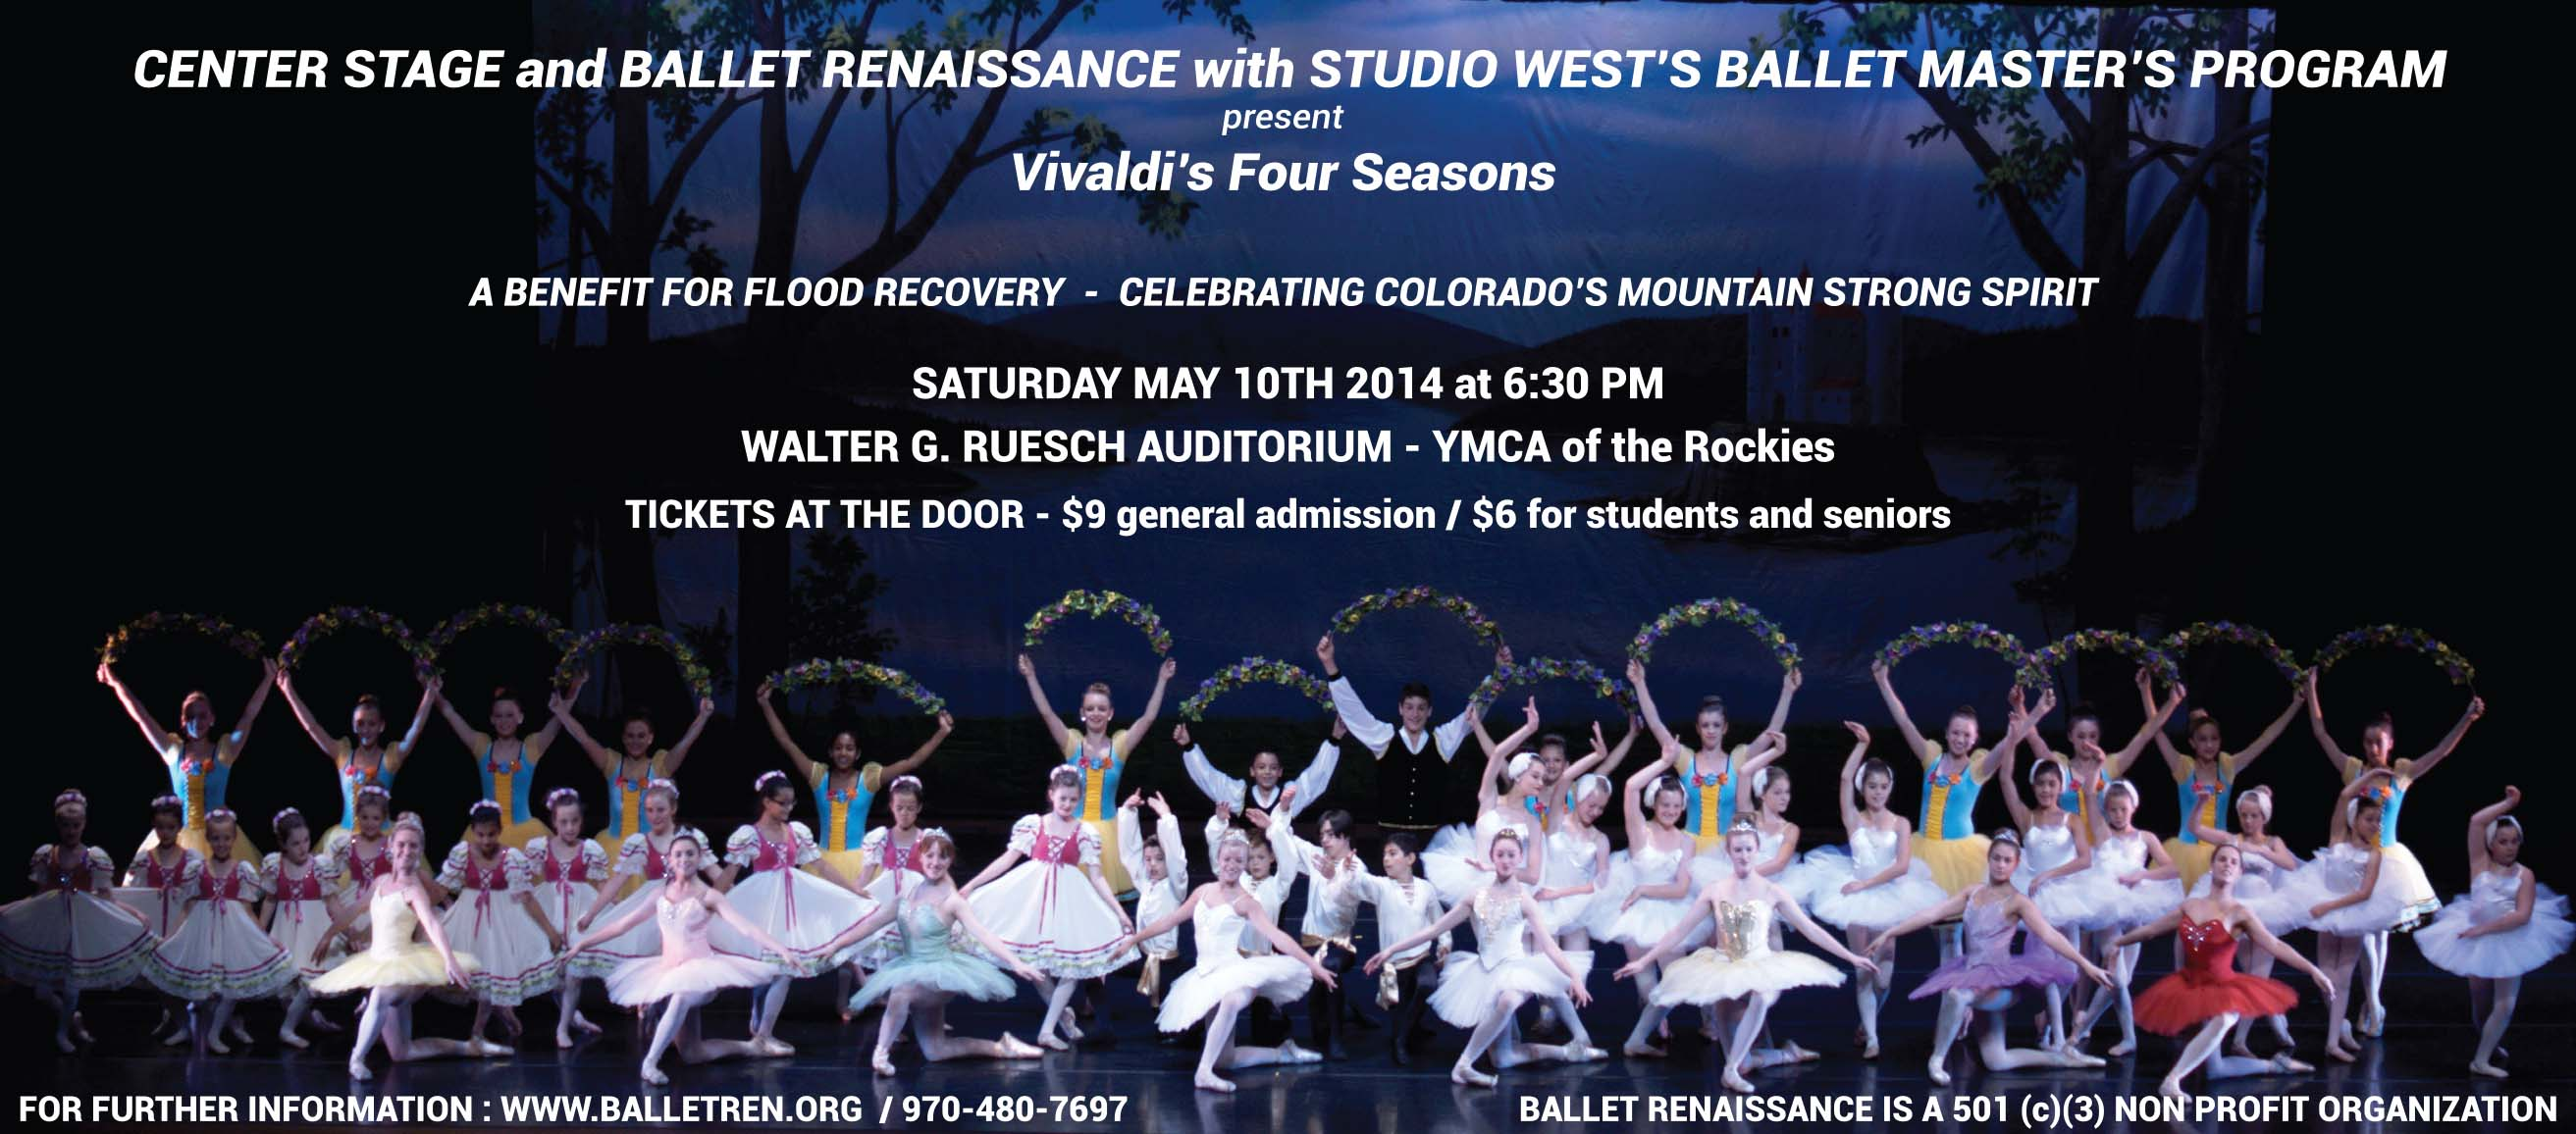 Ballet Masters students present Vivaldi's Four Seasons